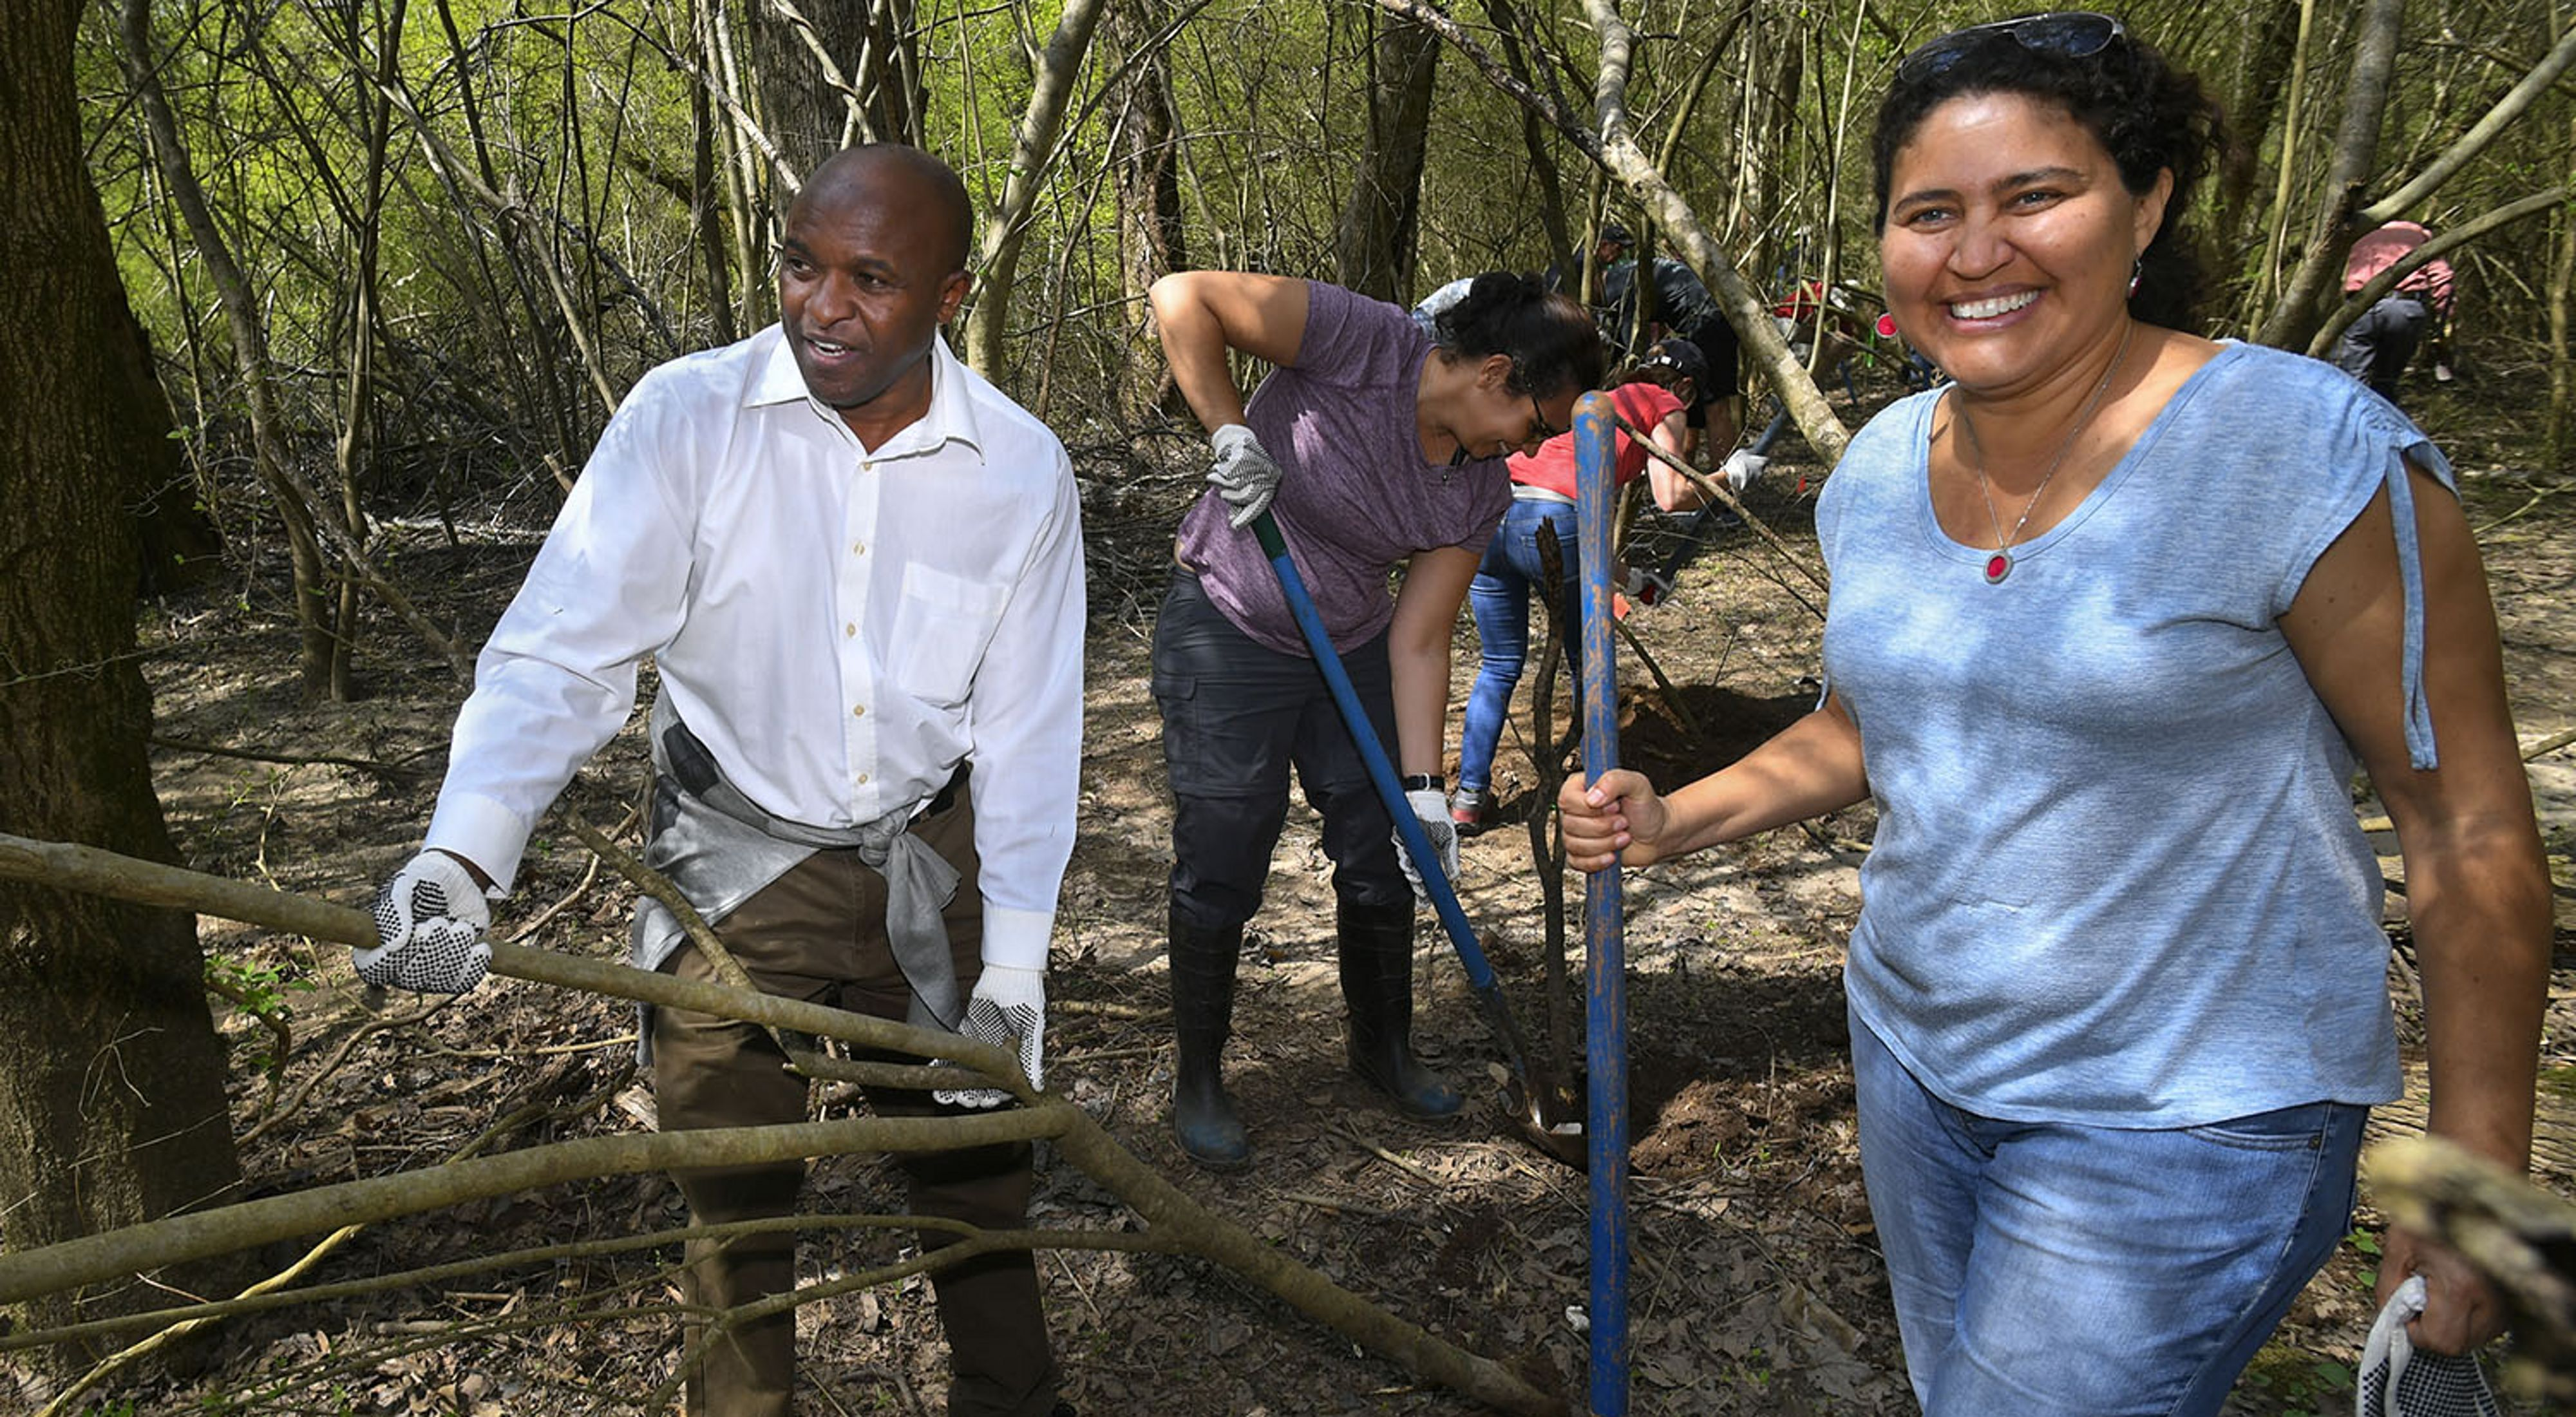 Smiling volunteers with shovels in a wooded area of the South River watershed.